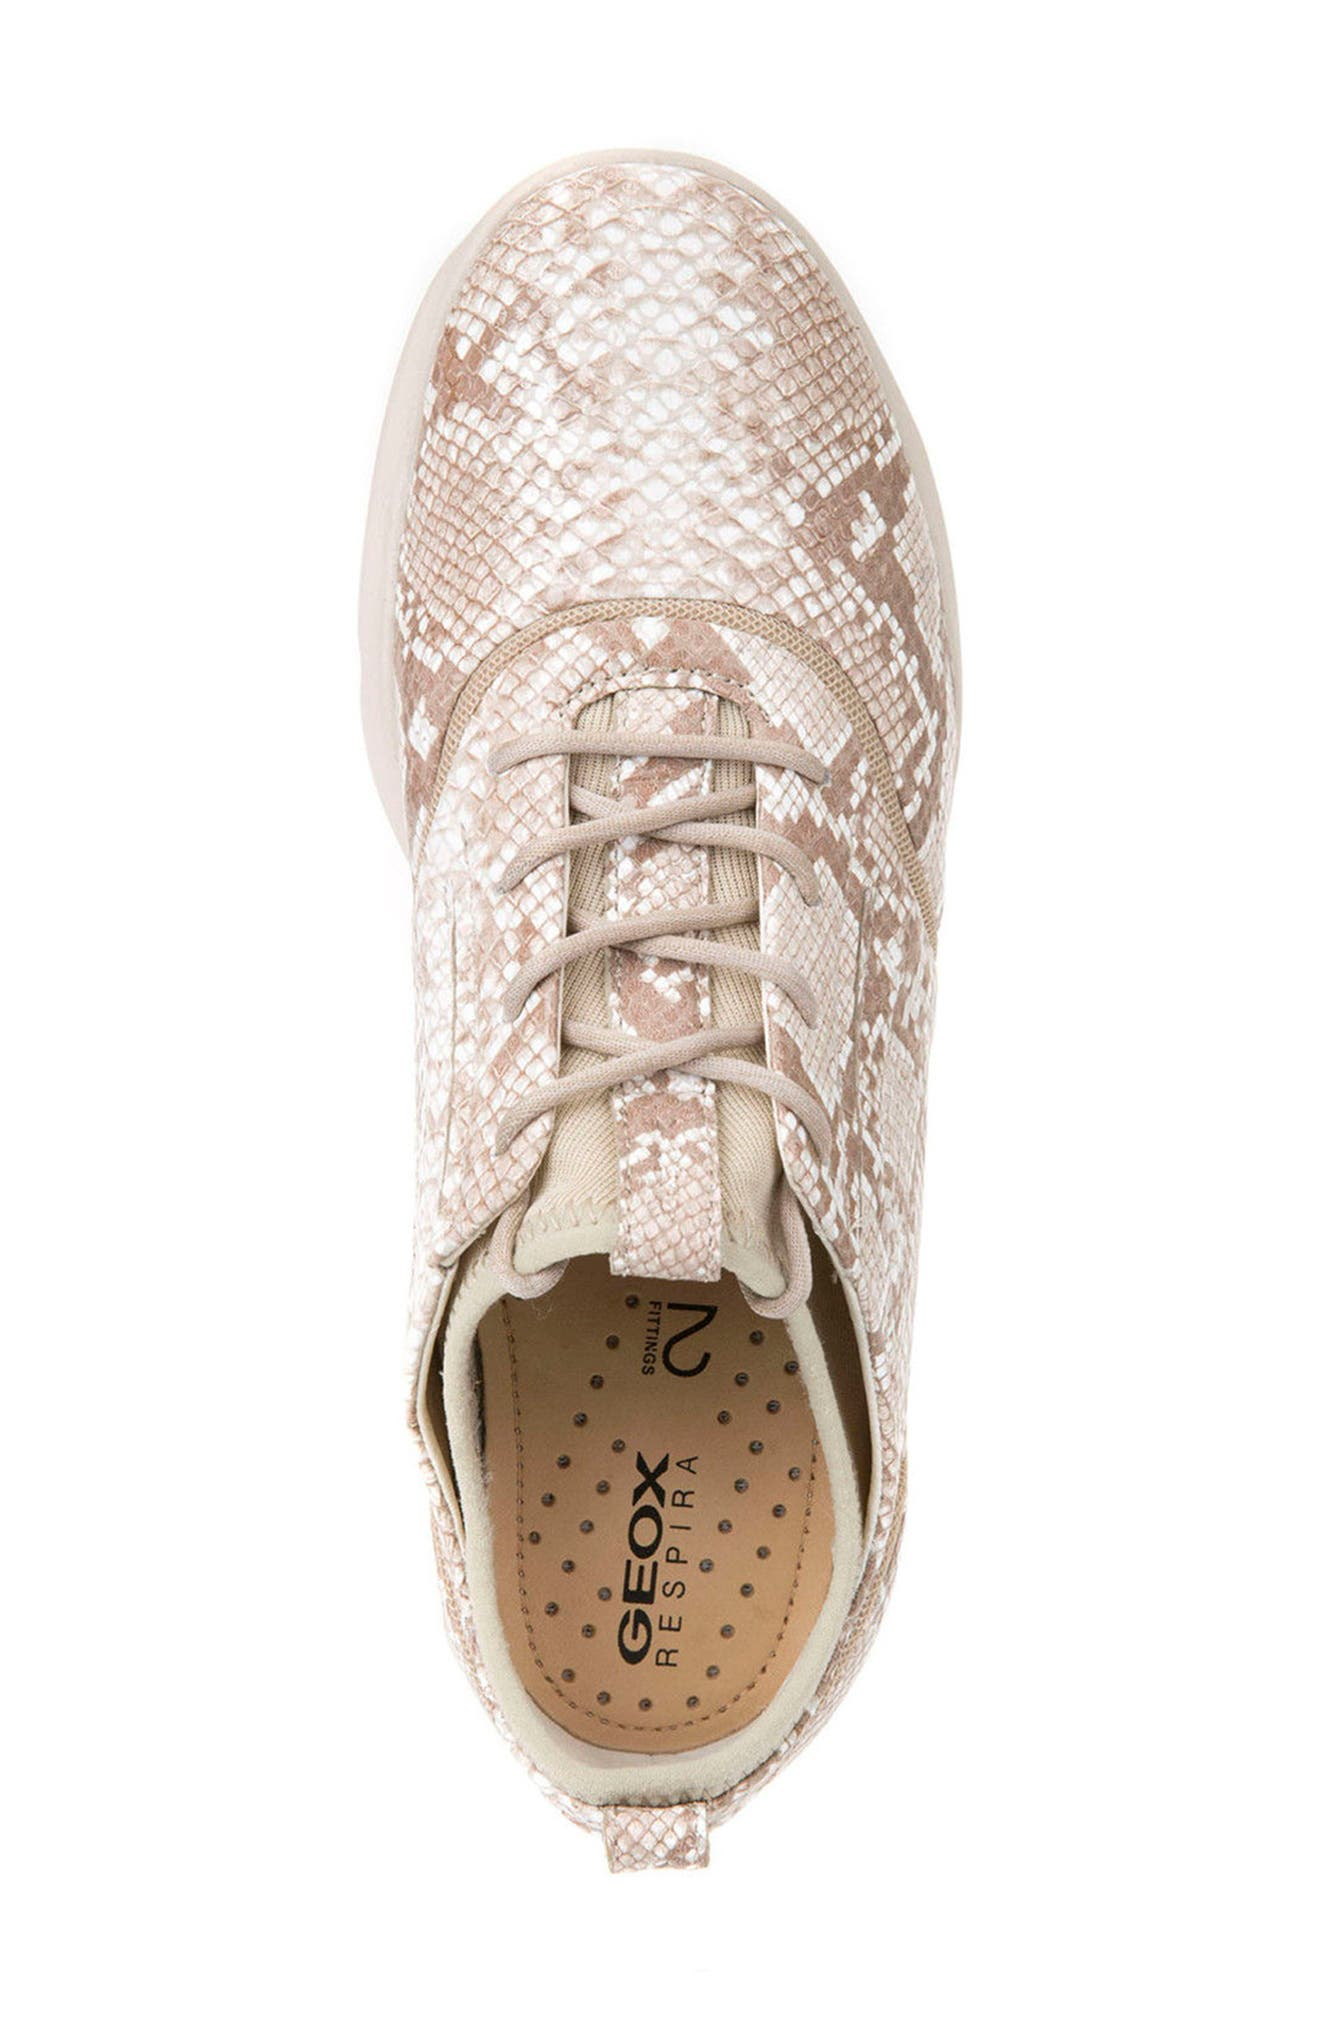 Nebula S 1 Python Embossed Sneaker,                             Alternate thumbnail 3, color,                             Beige Leather